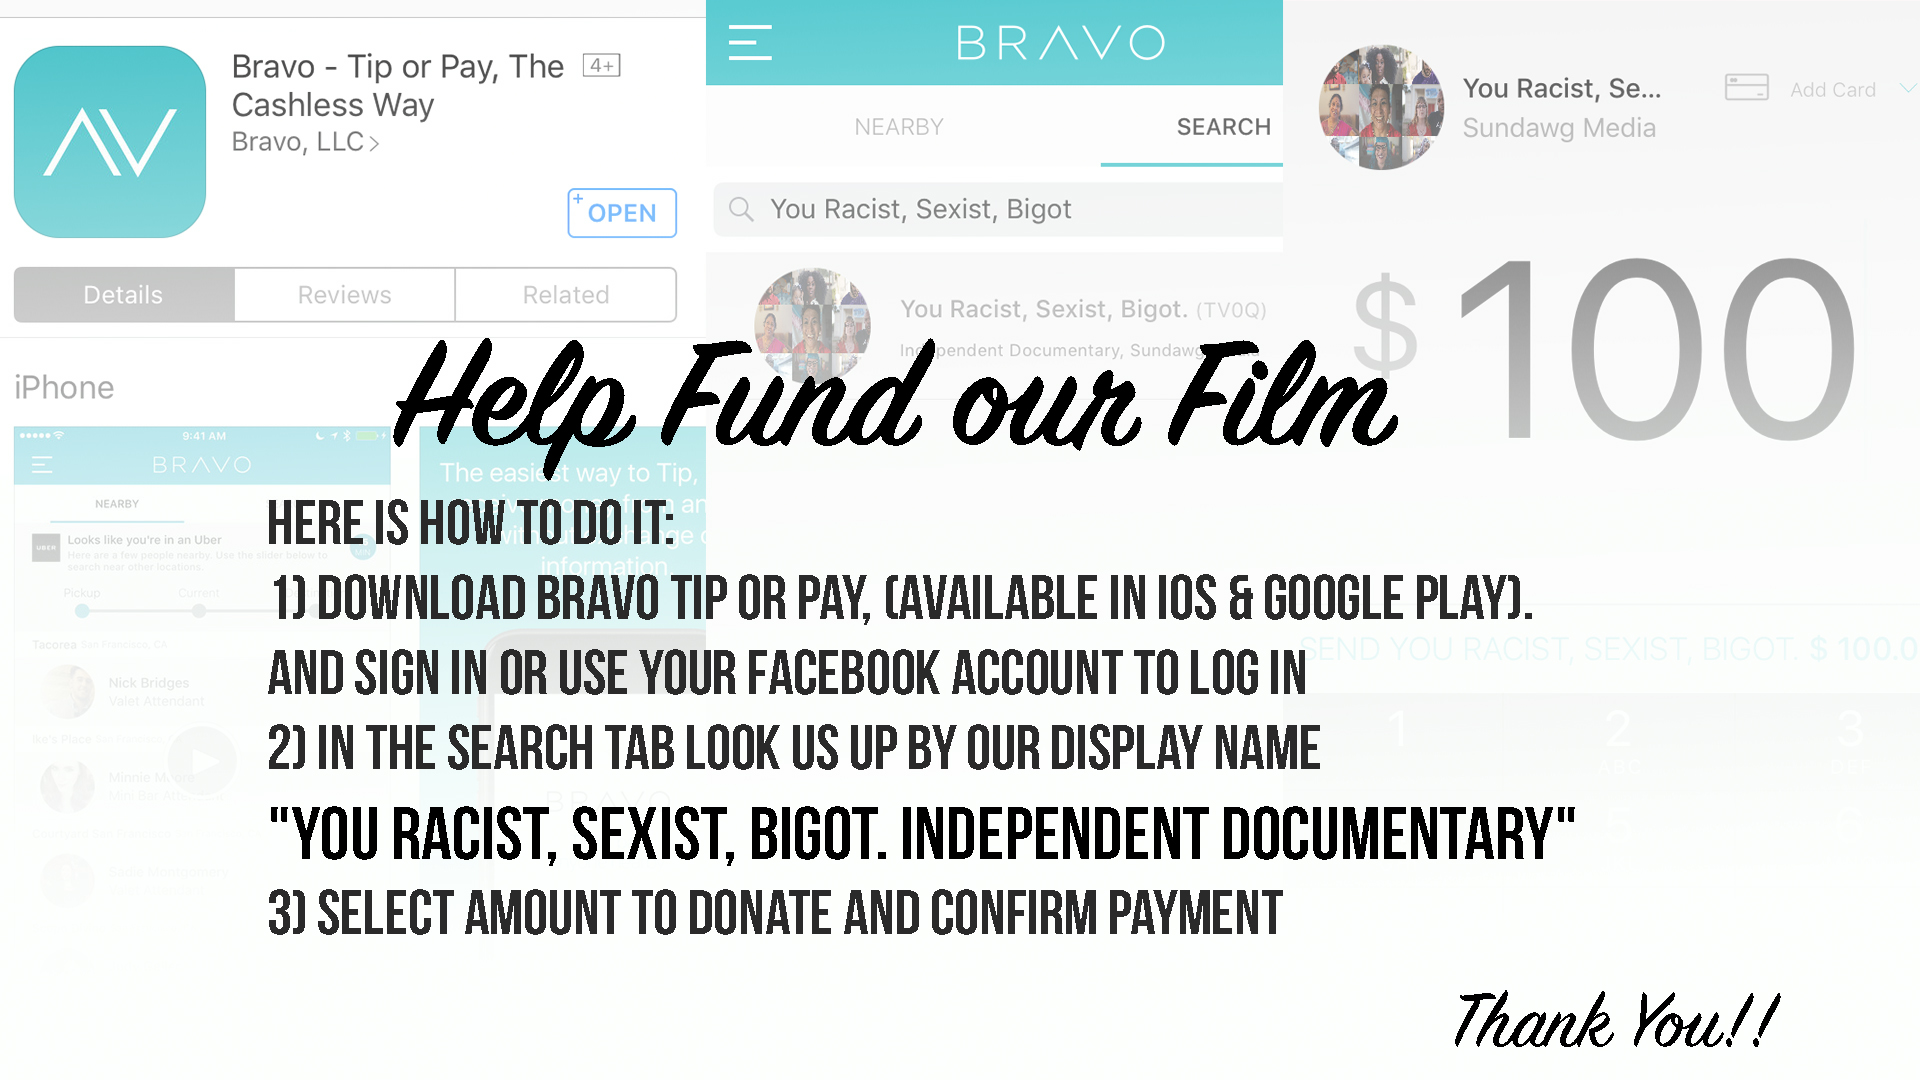 DONATE – You Racist, Sexist, Bigot  Independent Documentary